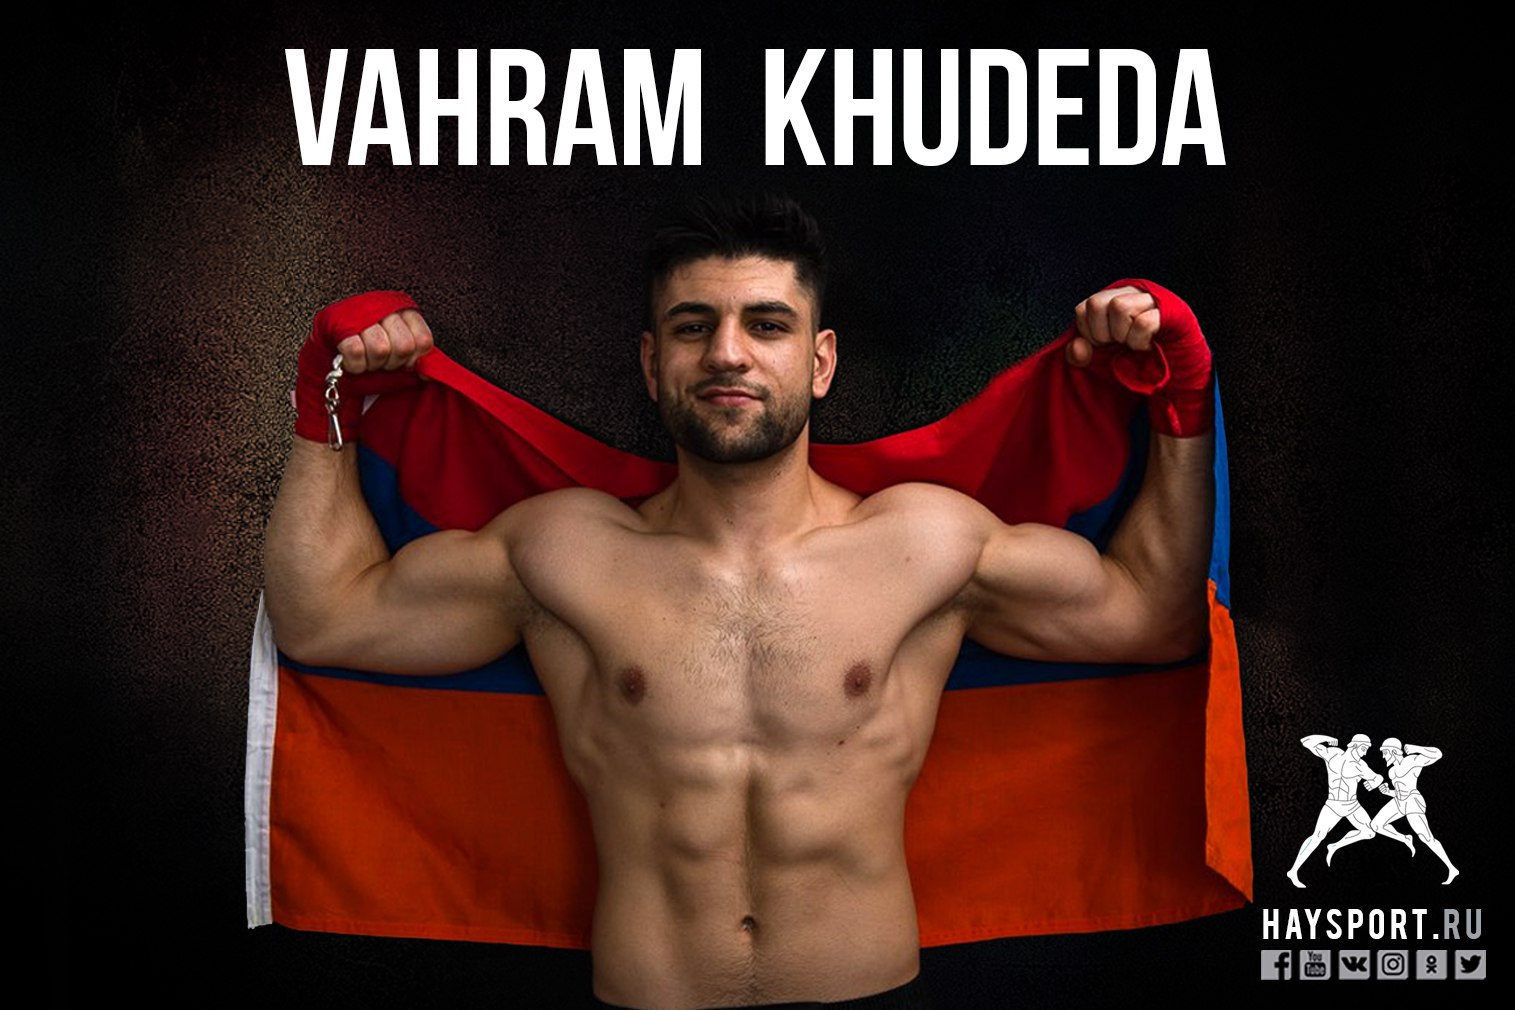 <b>Vahram Khudeda: I am very proud of our nation!</b>